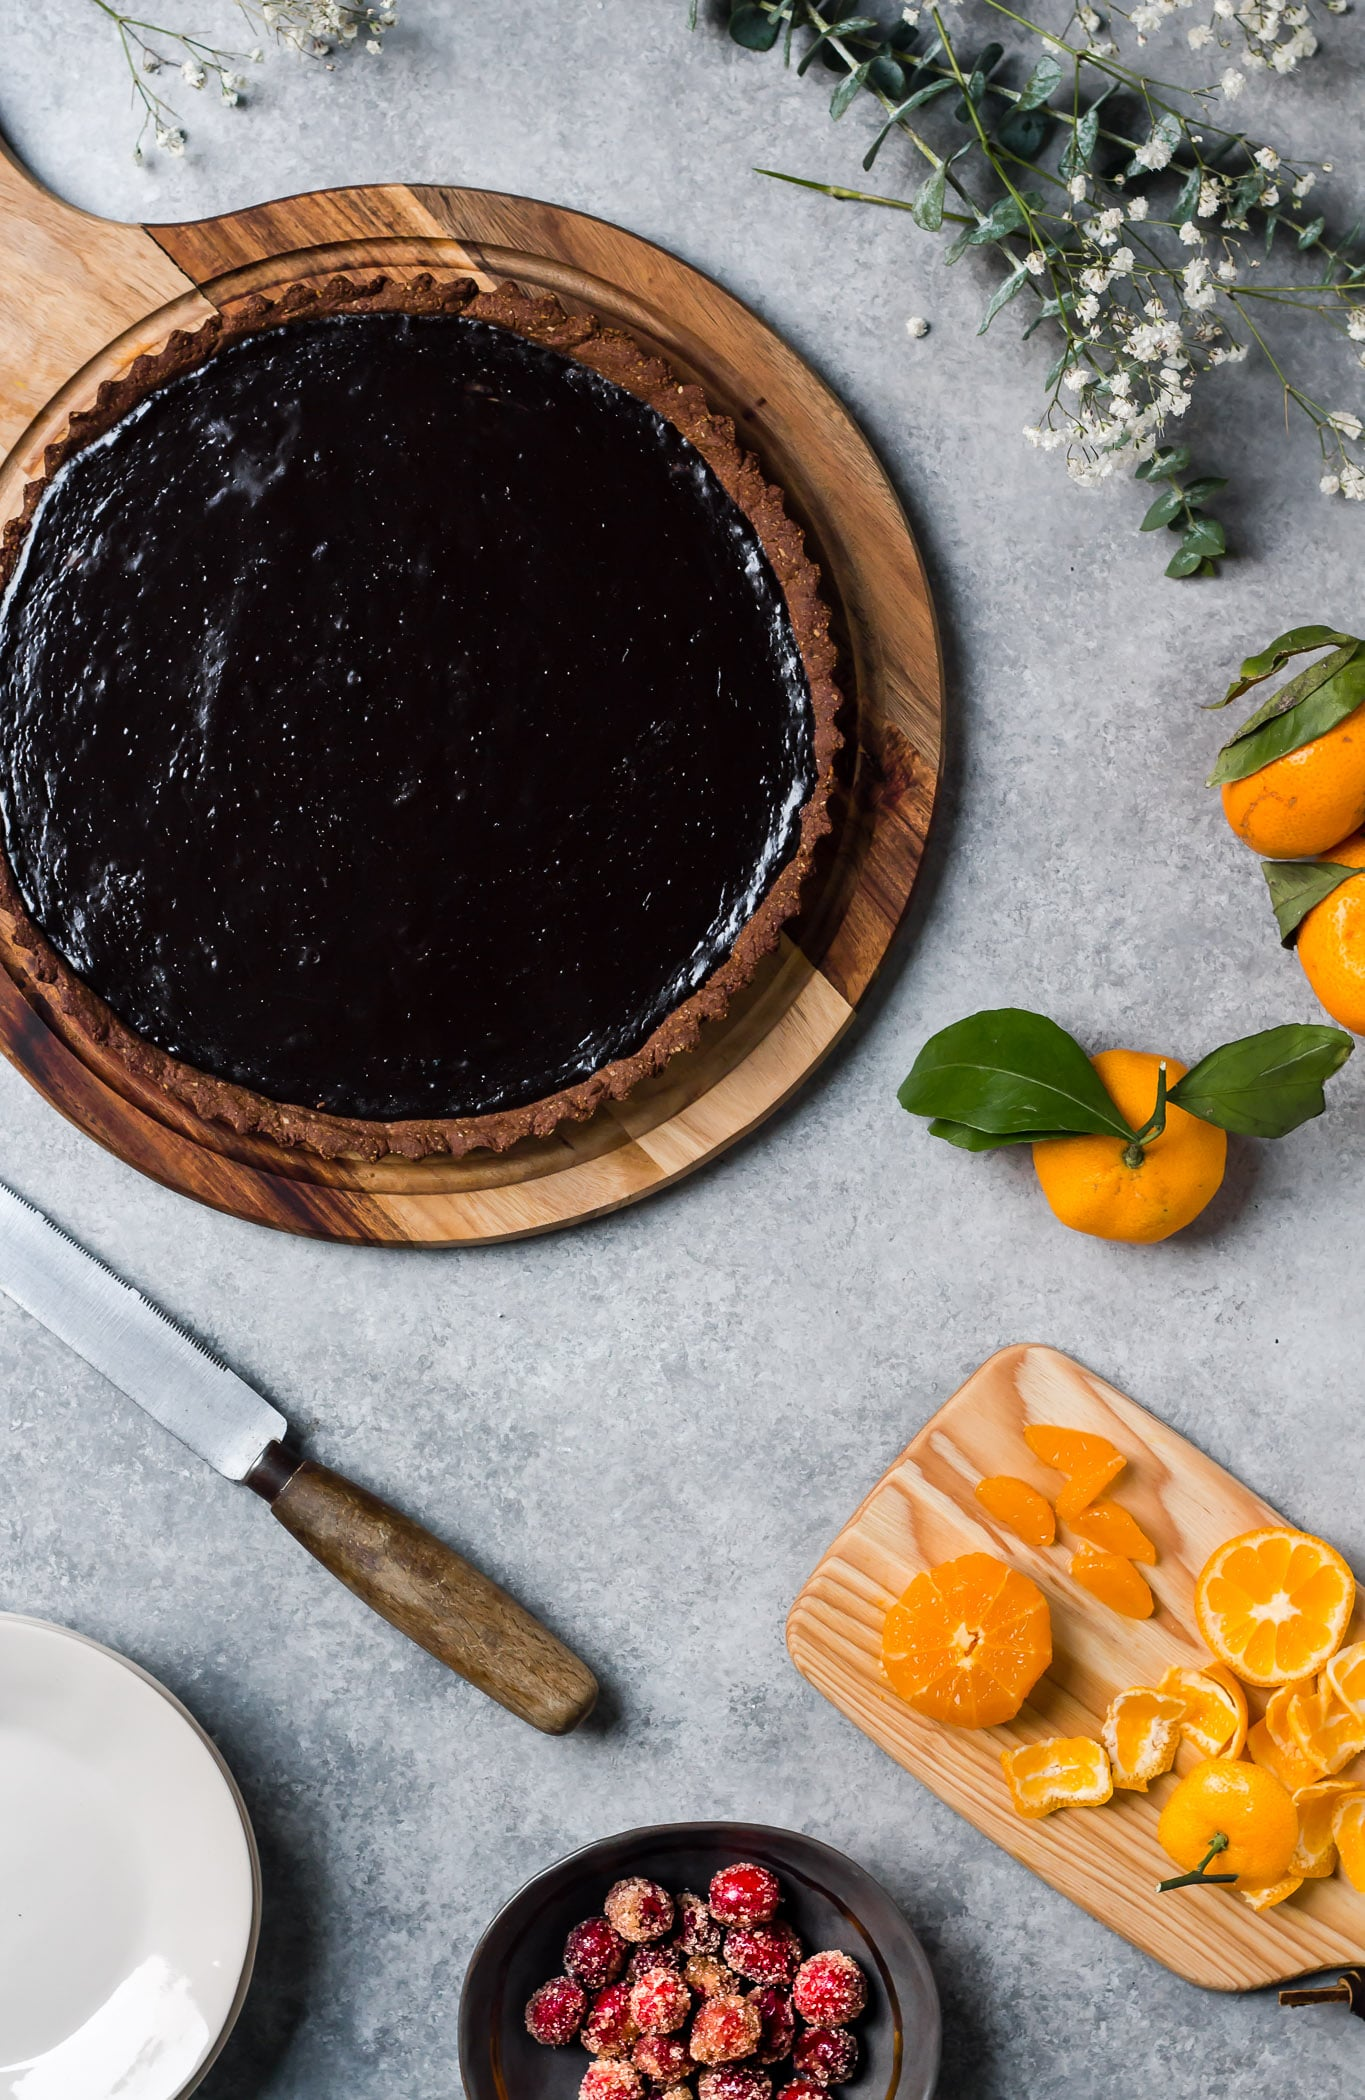 whole dark chocolate tart with bowl of cinnamon sugared cranberry and cut mandarins